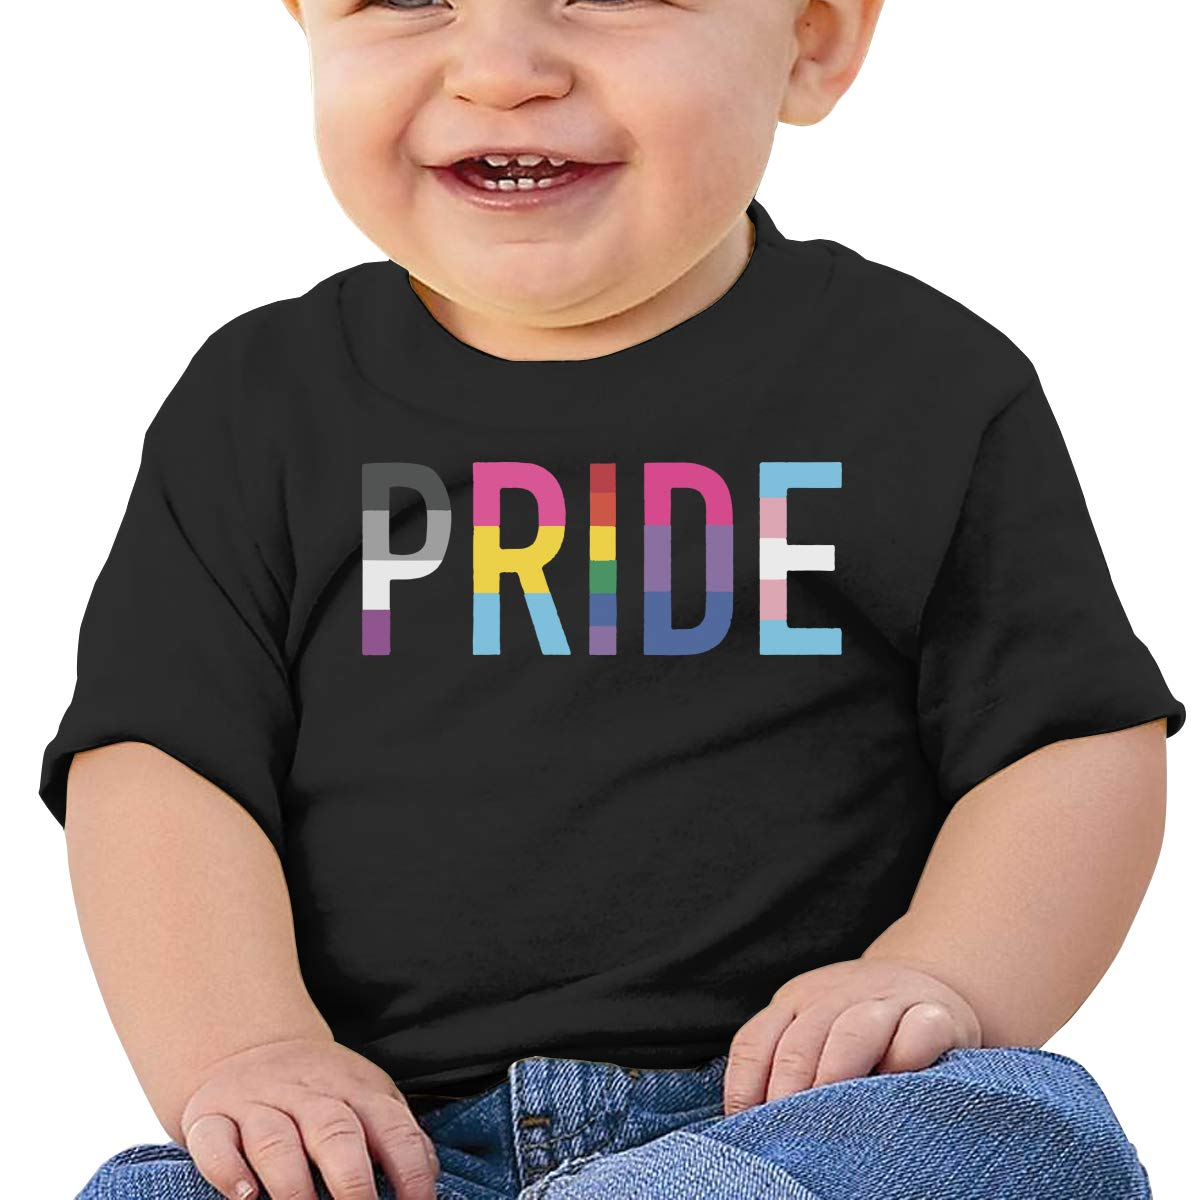 Pride LGBT Entry Way Baby Boy Newborn Short Sleeve T-Shirt 6-24 Month Soft Tops